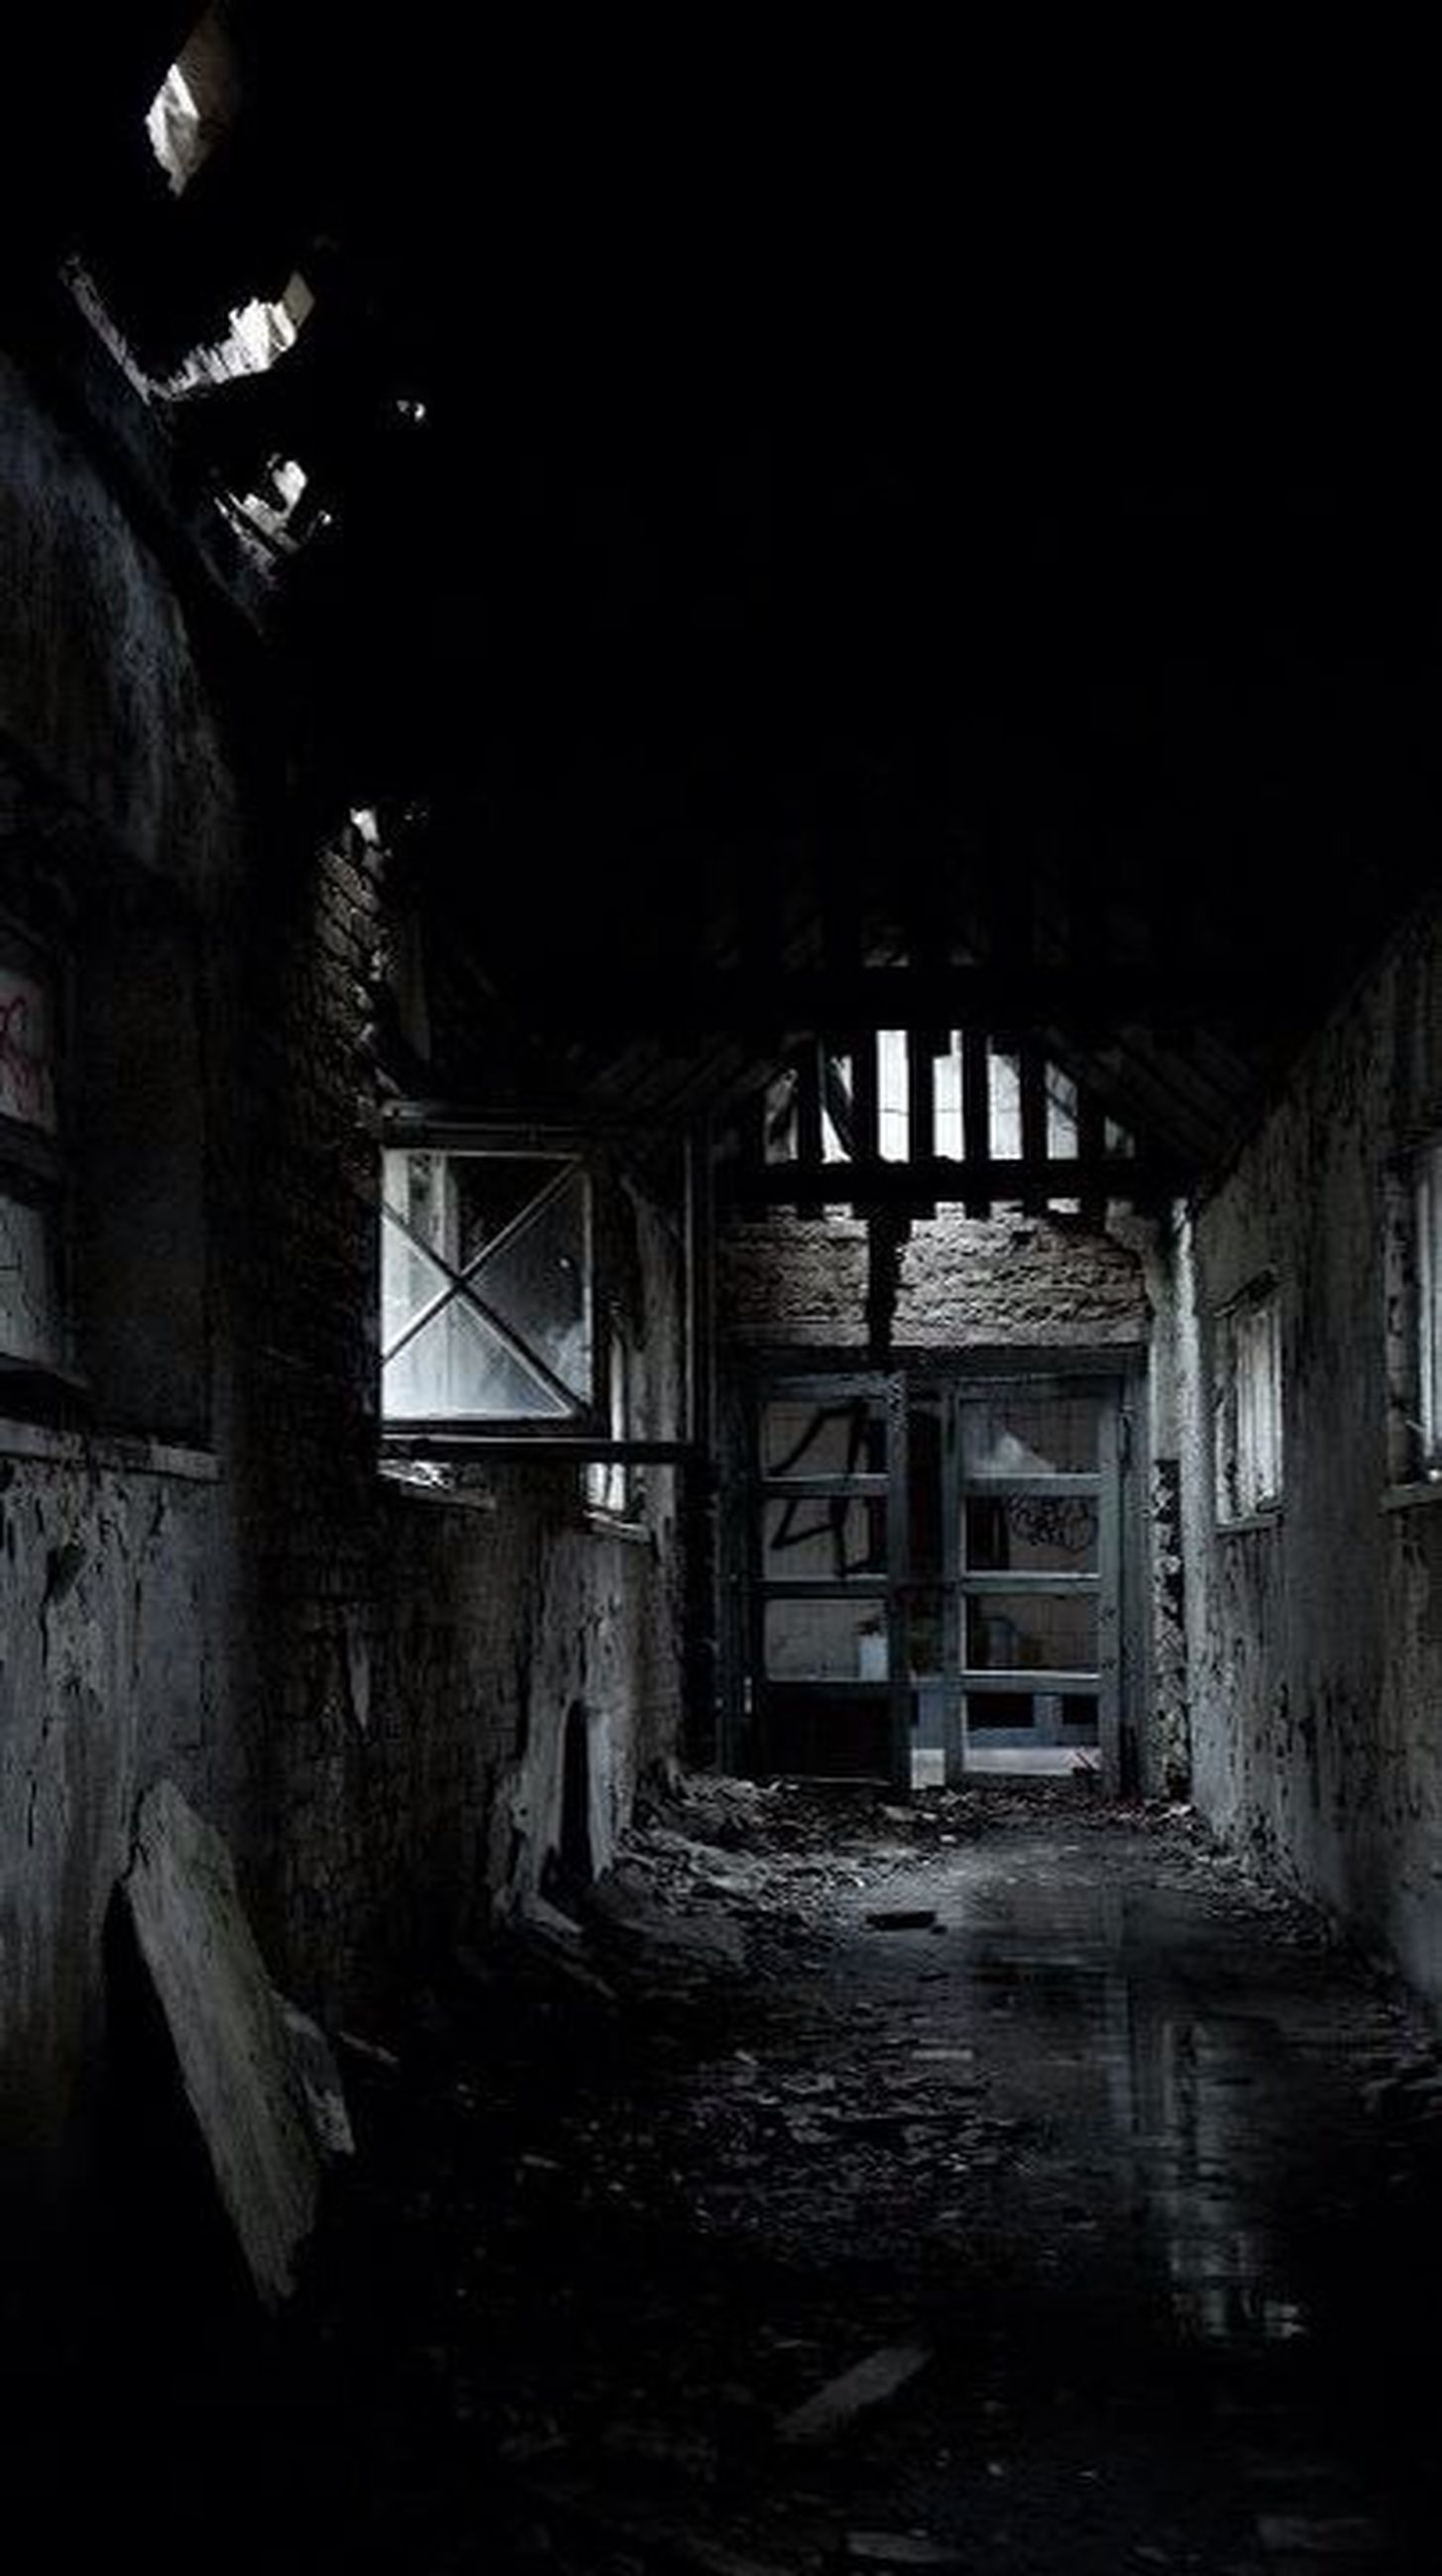 abandoned, architecture, built structure, obsolete, old, deterioration, run-down, damaged, indoors, house, weathered, interior, bad condition, night, building exterior, ruined, building, illuminated, the way forward, destruction